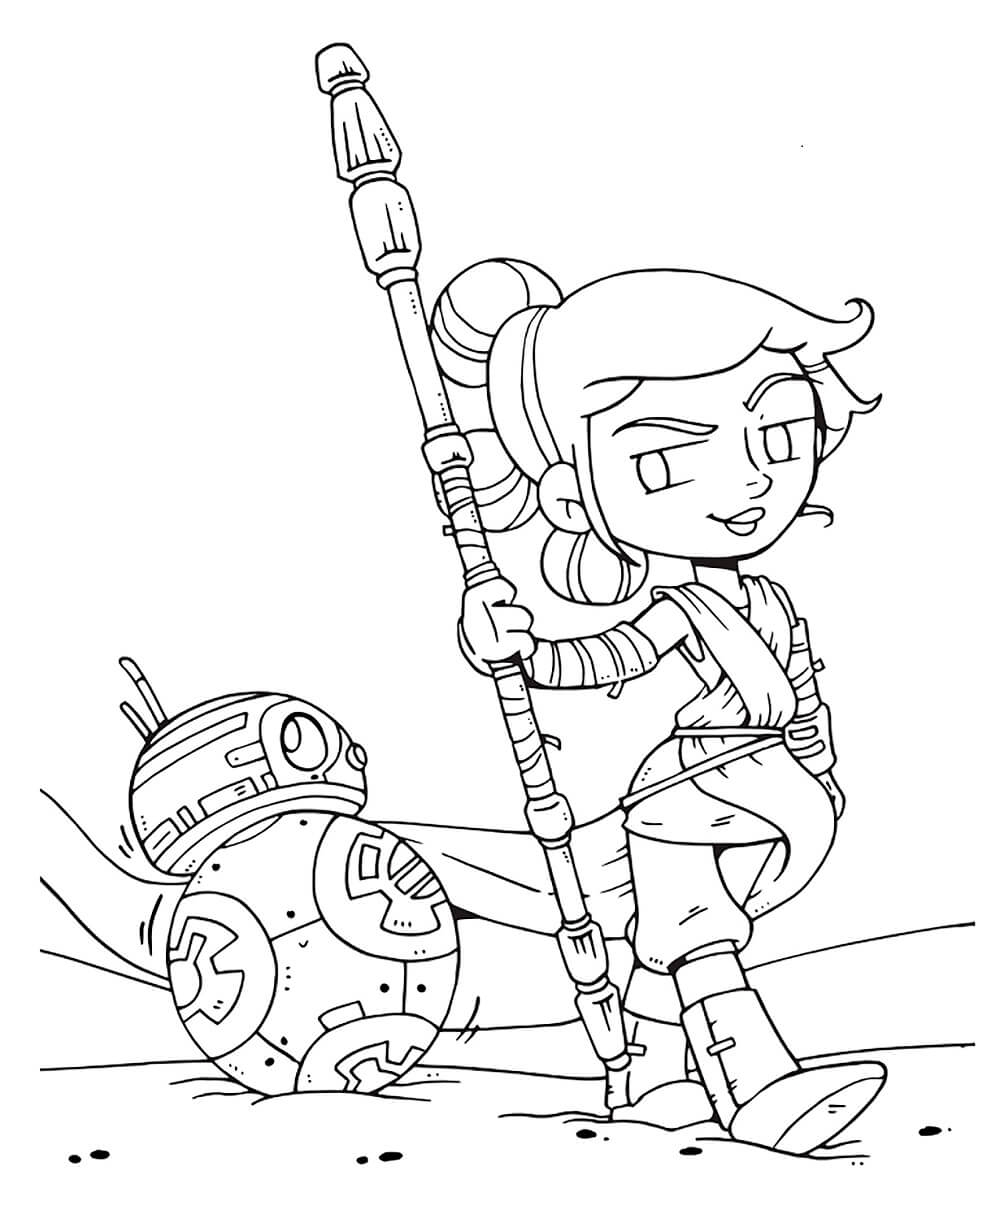 Star Wars the force Awakens Coloring Pages Google Search to Print ...